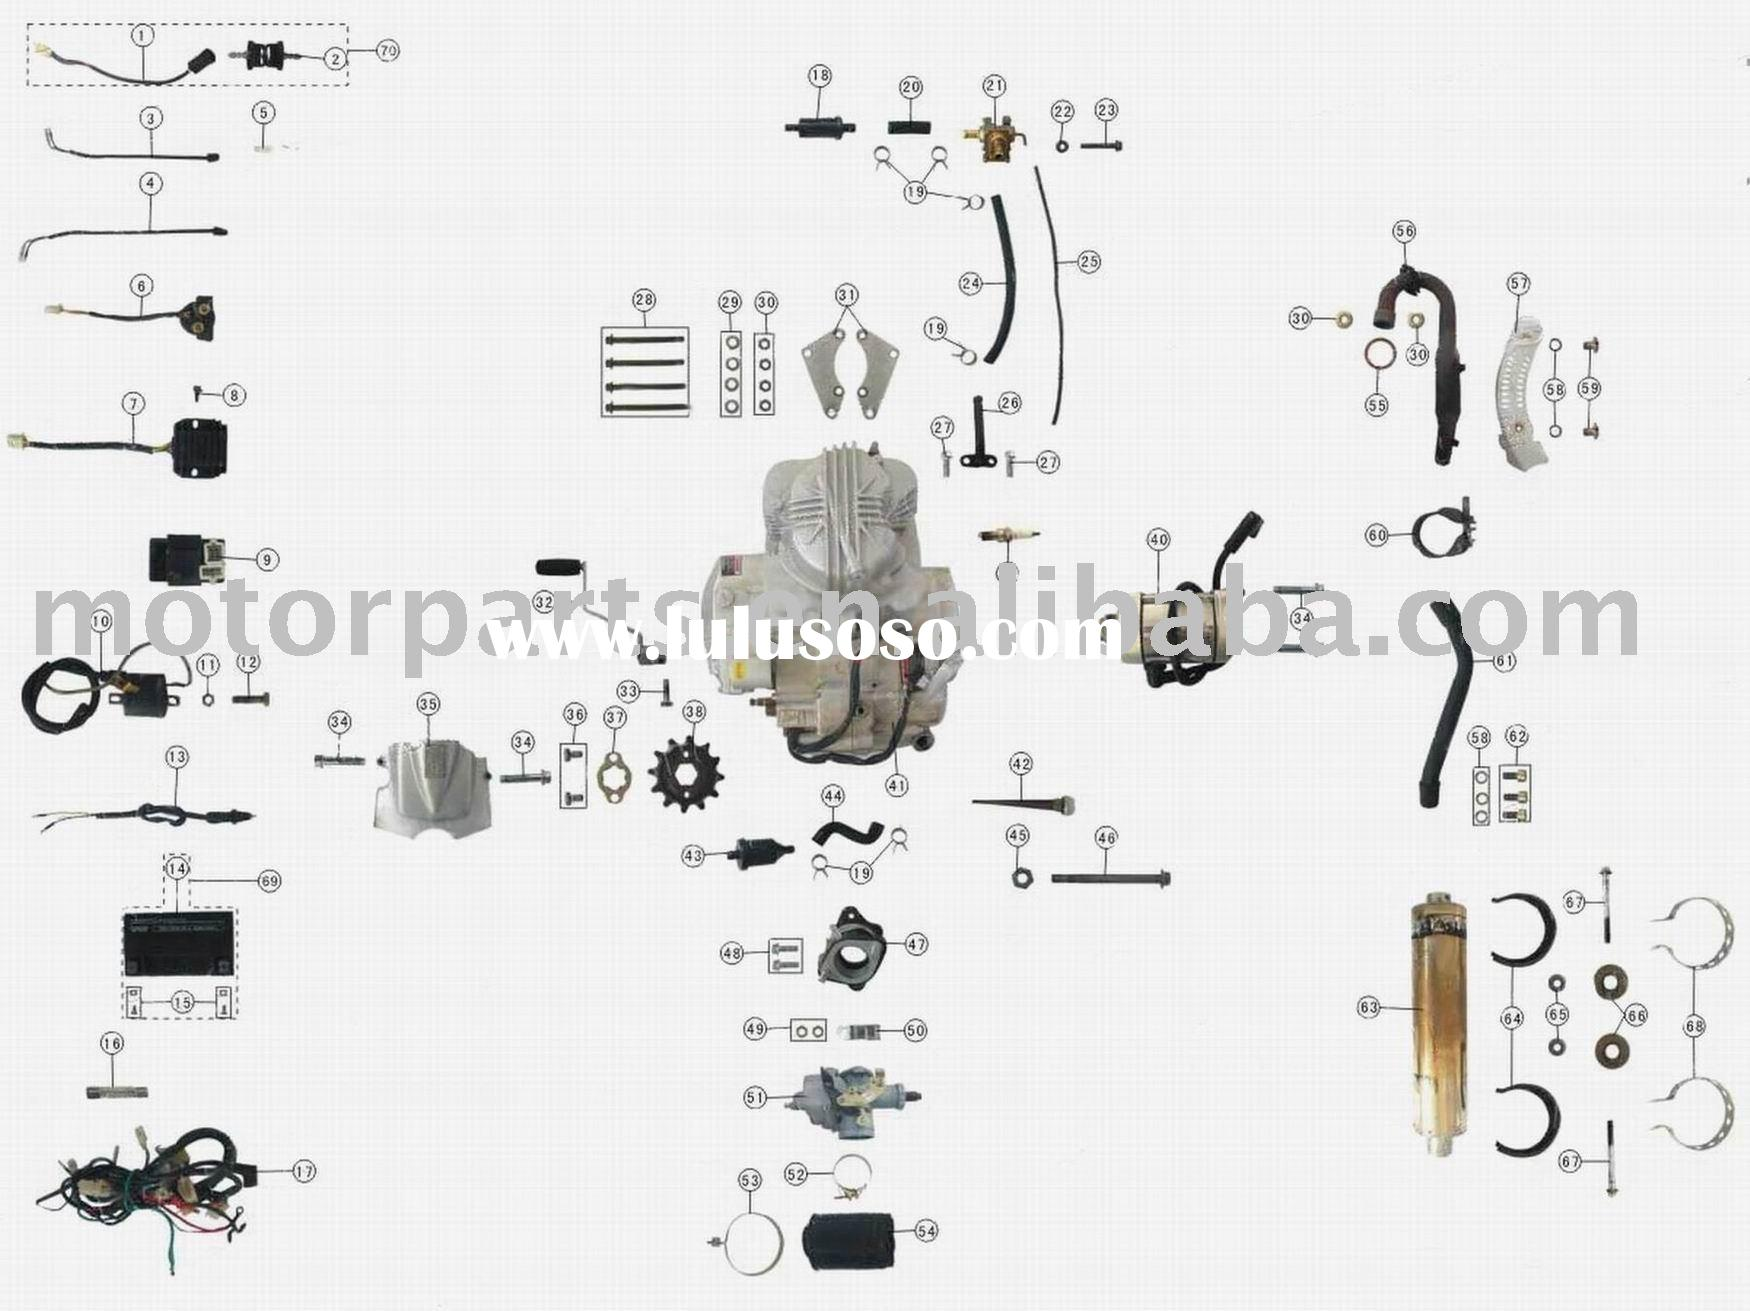 lifan 110cc wiring diagram house distribution board engine parts/110cc atv parts for sale - price,china manufacturer,supplier 612569